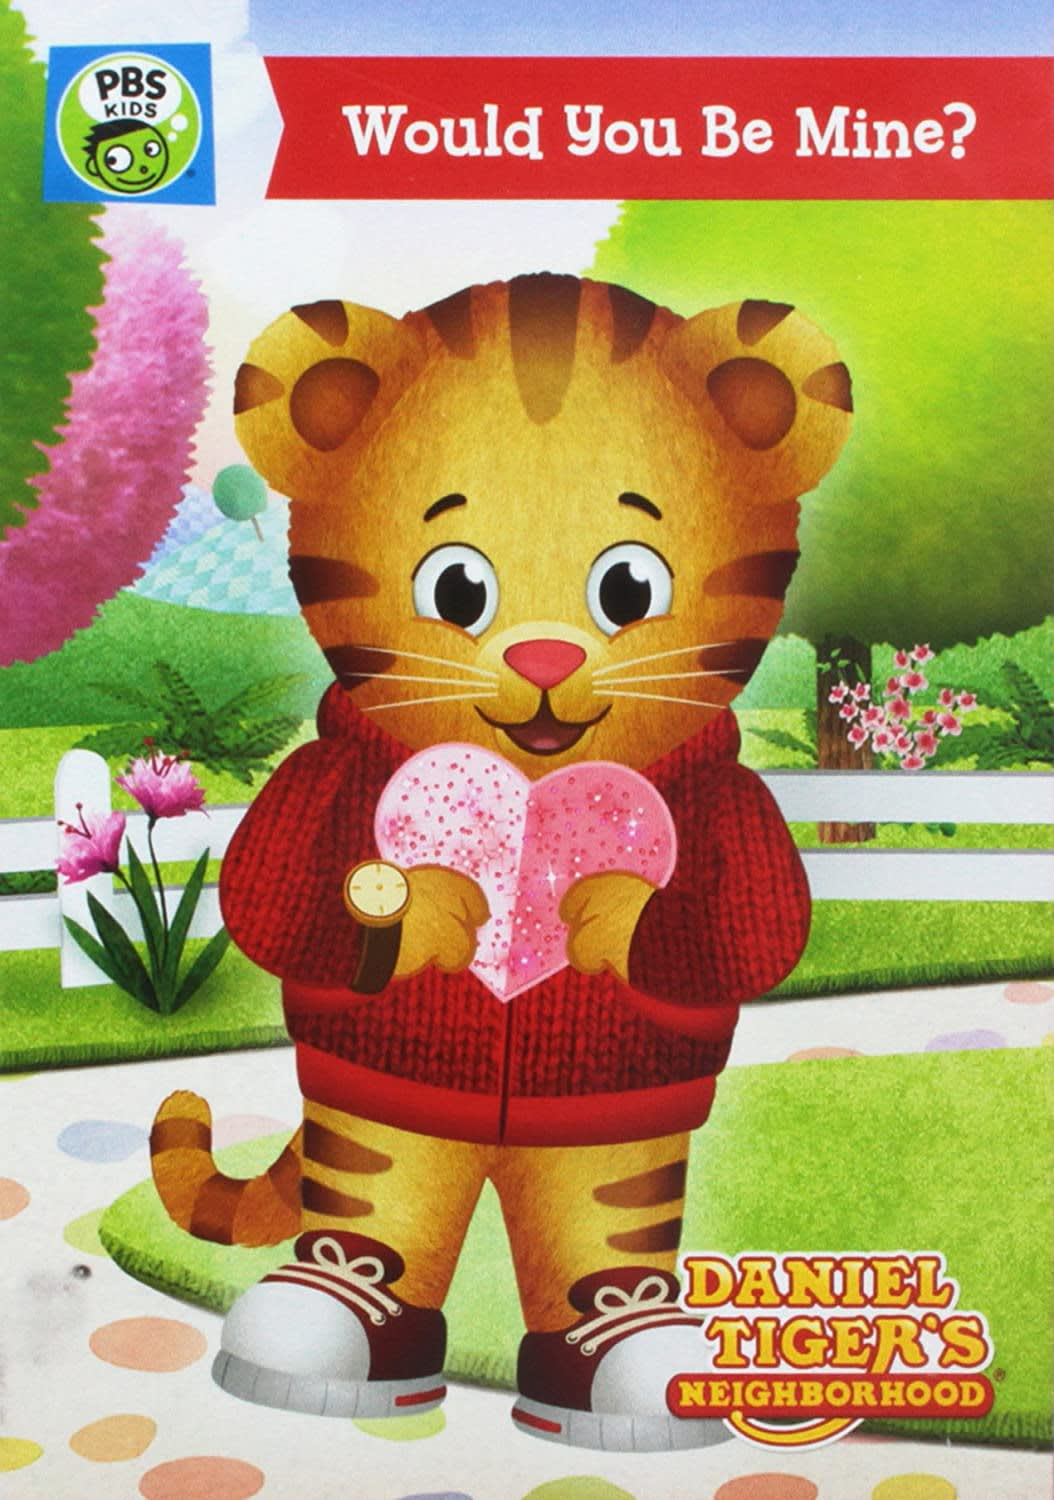 Daniel Tiger's Neighborhood: Would You Be Mine? [DVD]